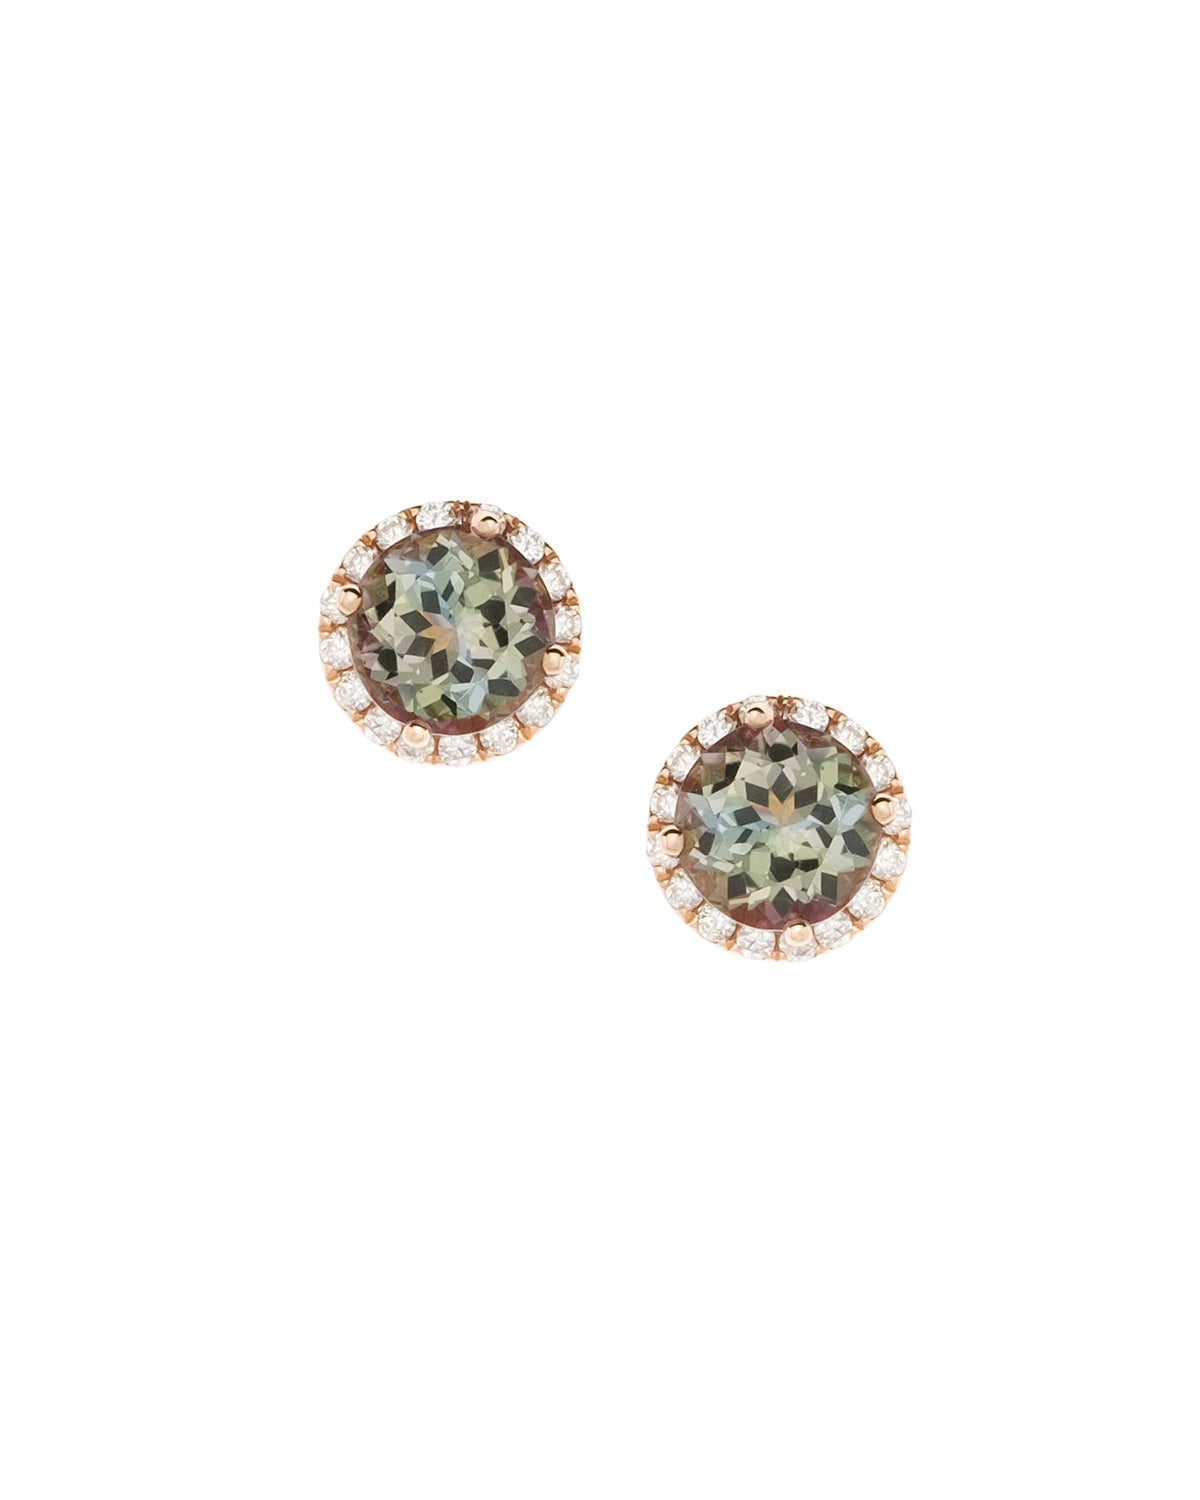 Rare Zoisite and Diamond Halo Earrings